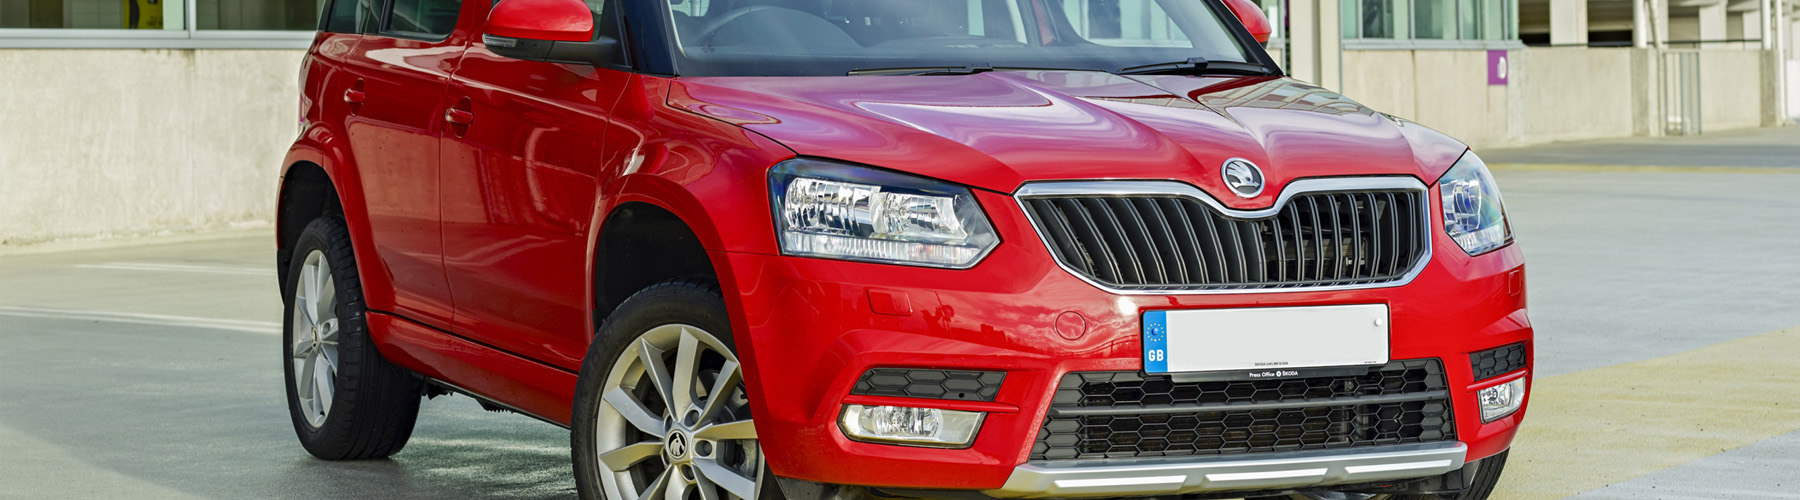 The very best value SKODA Yeti deals anywhere - SKODASTORE.com